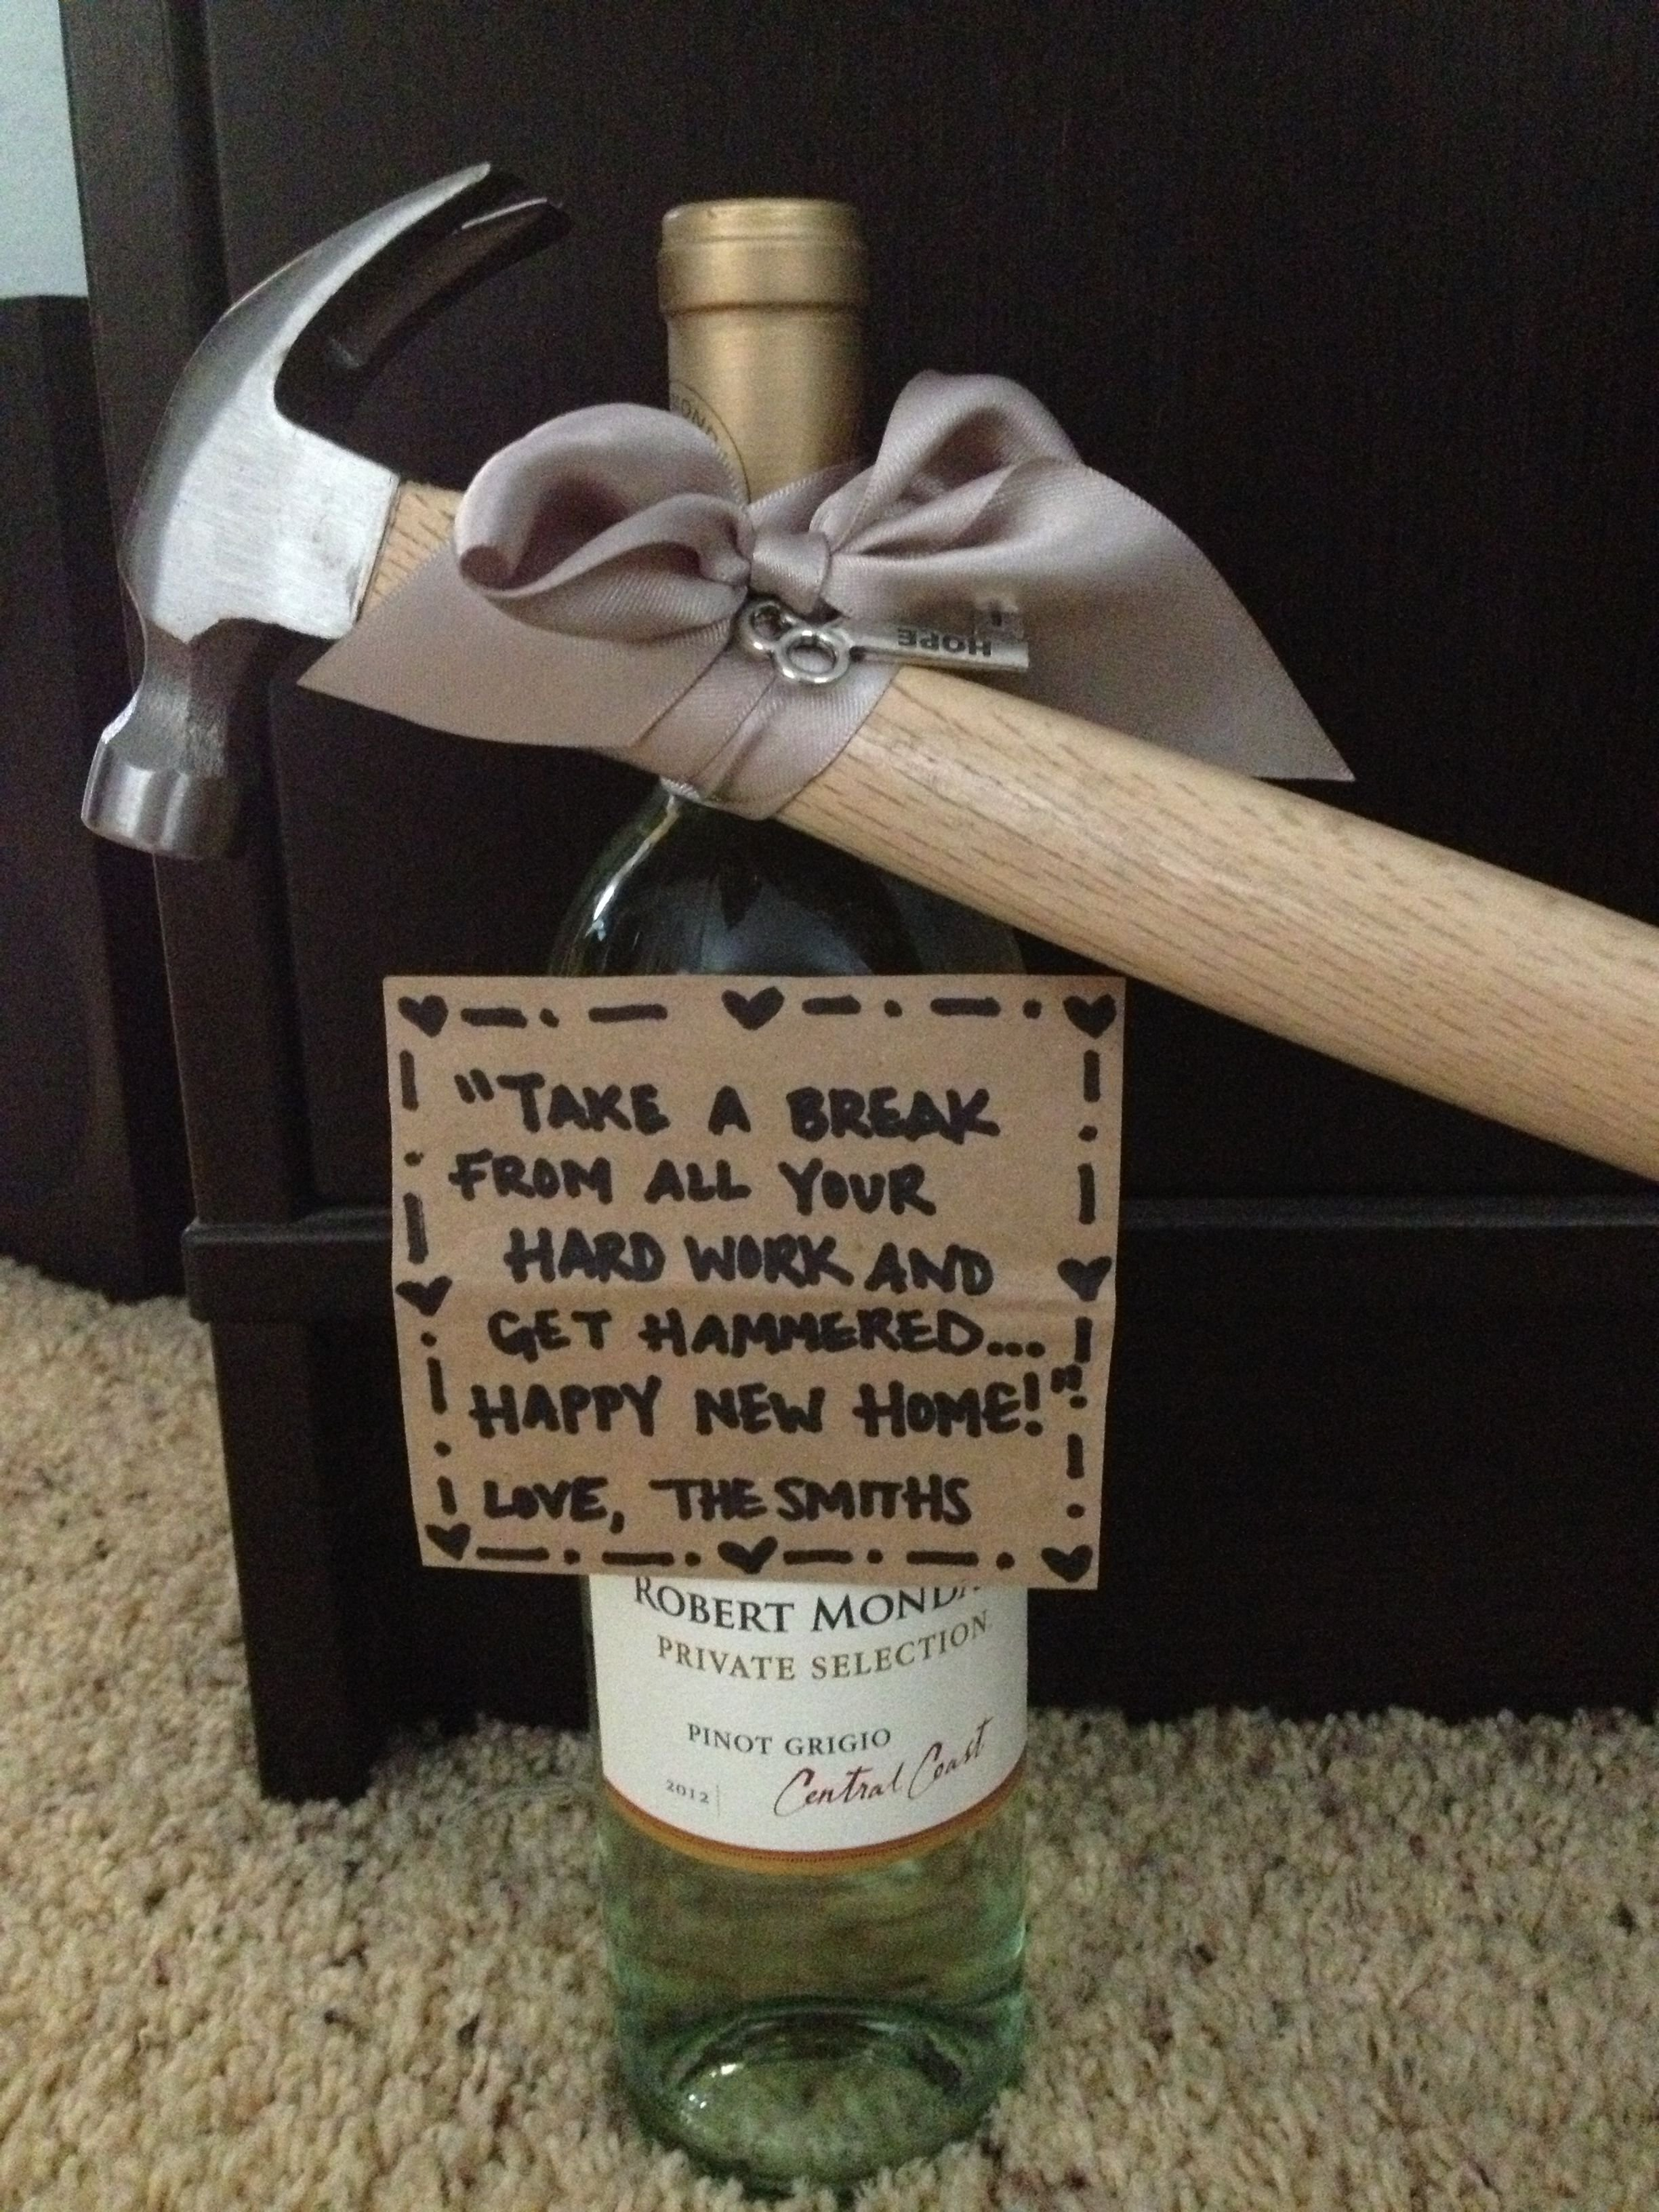 10 Beautiful Housewarming Gifts Ideas For Couples farewell letter from housewarming gifts gift and crafty 2020